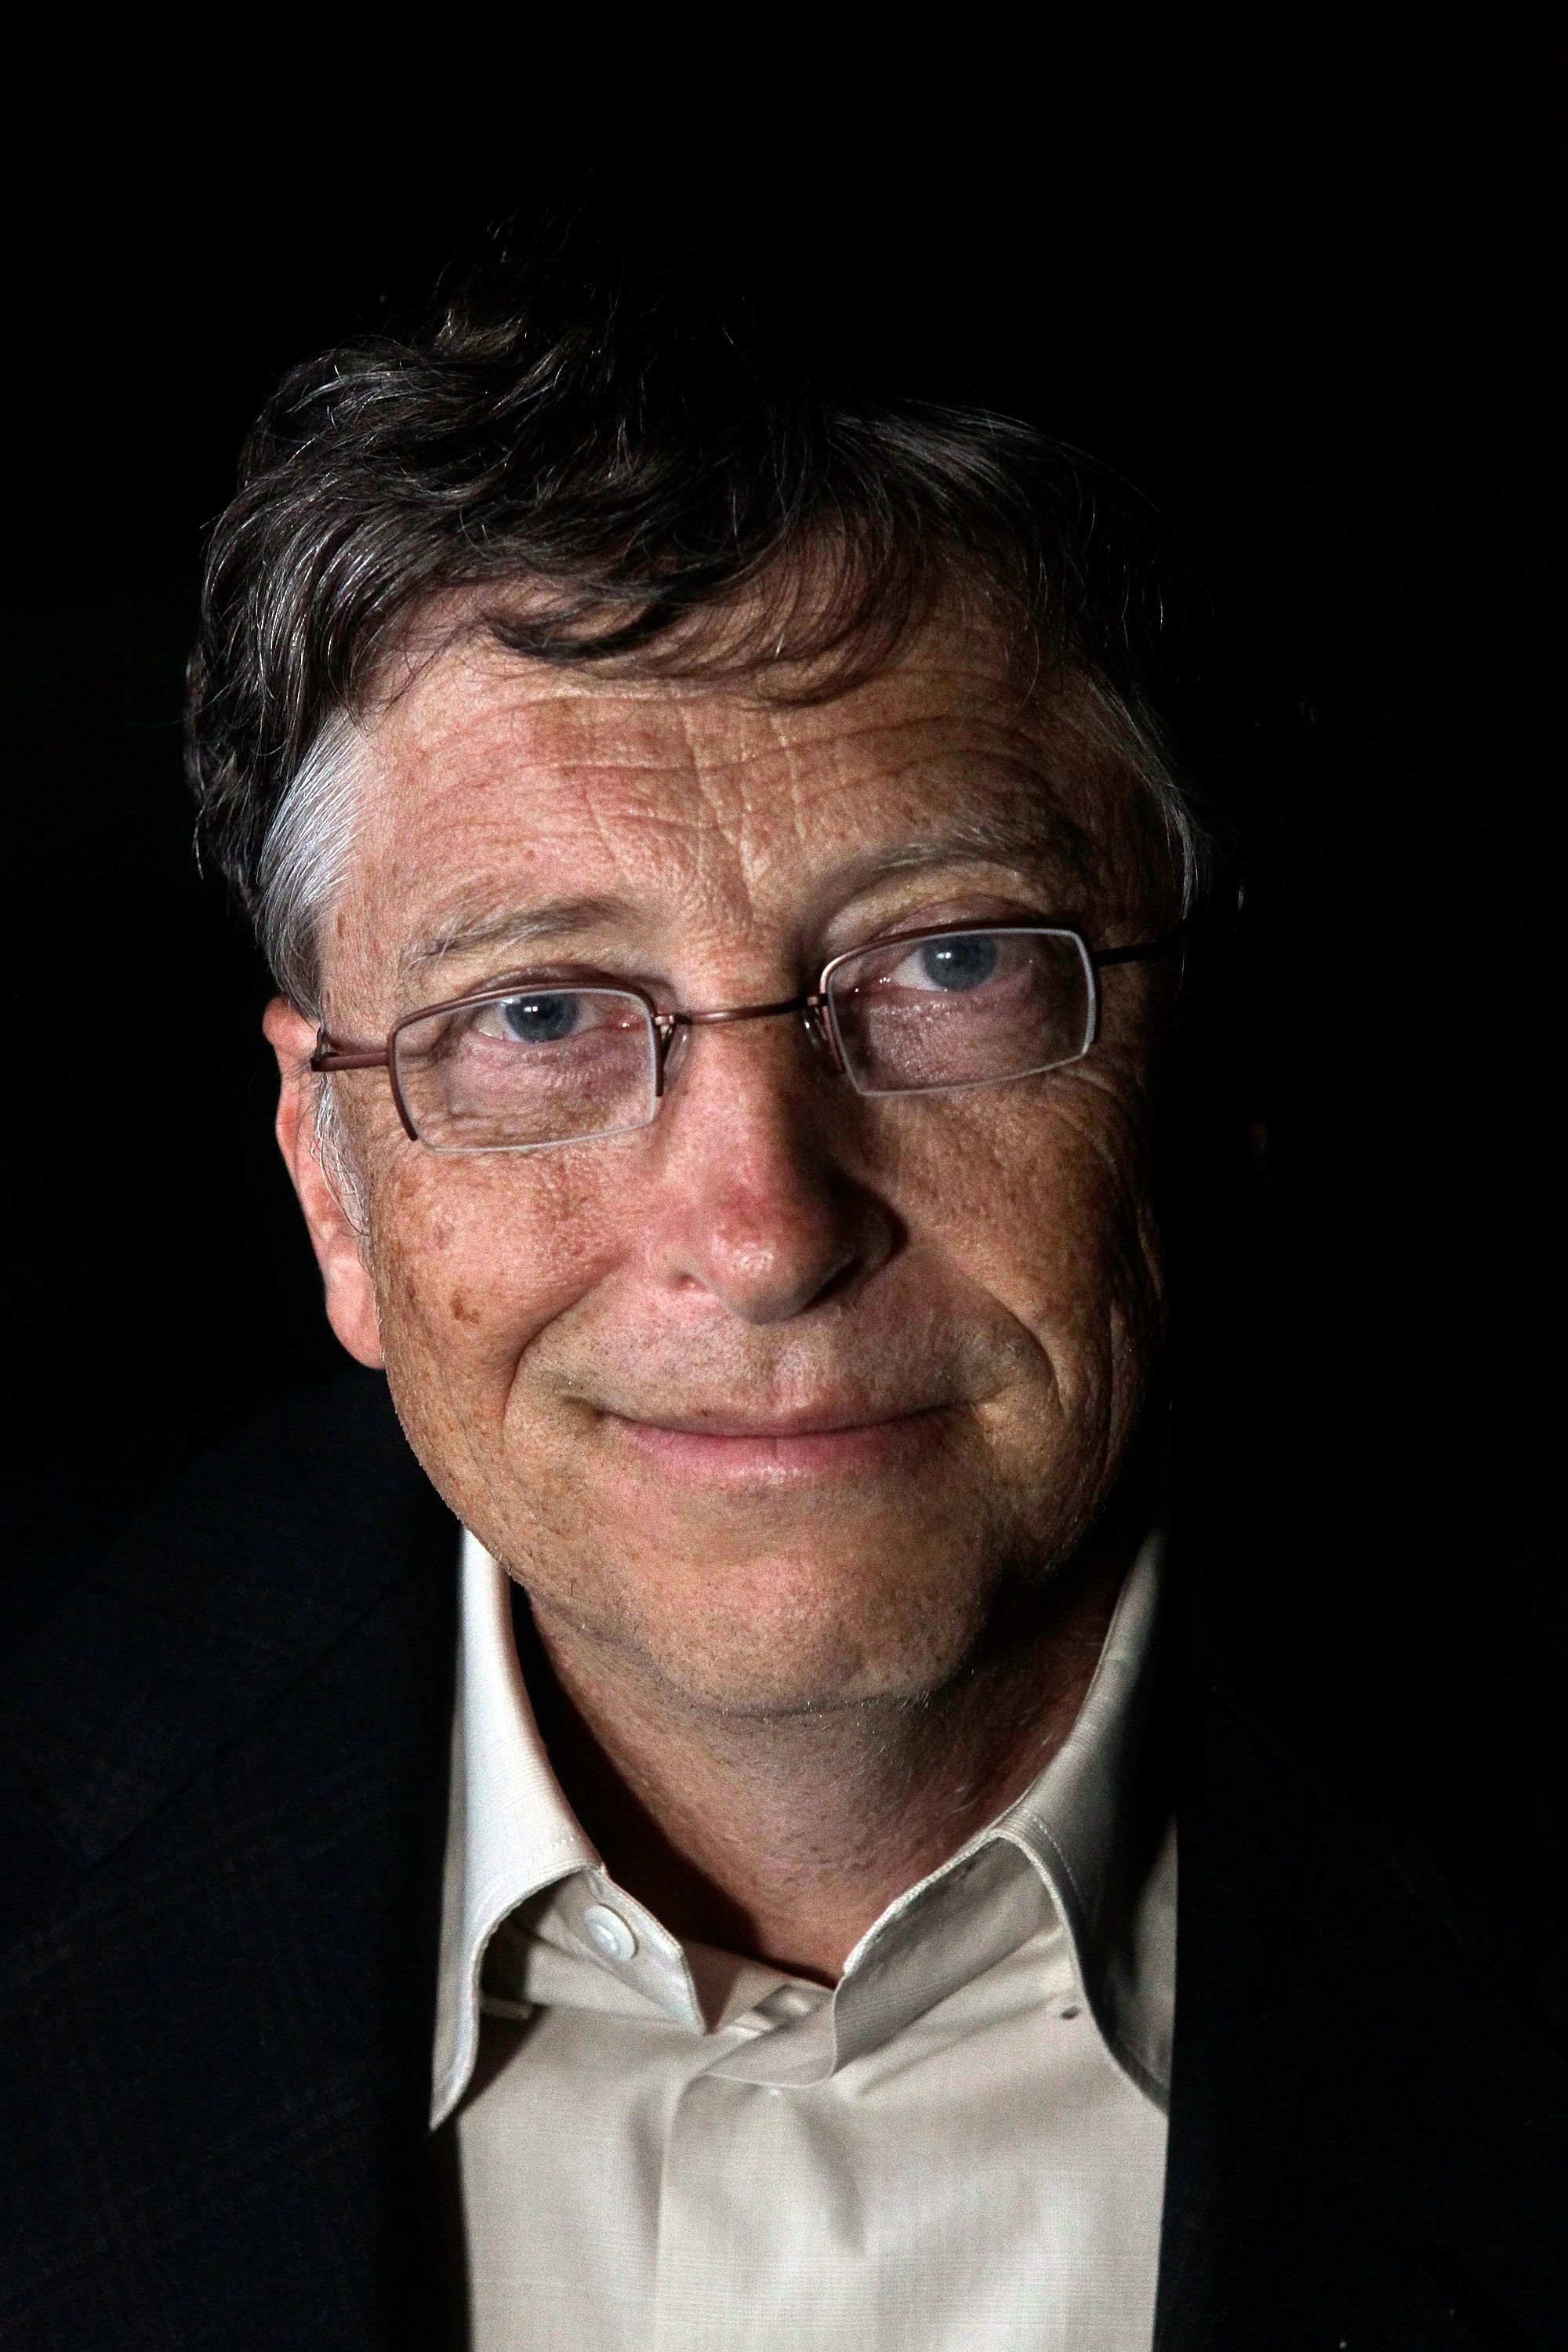 a biography of bill gates the american business magnate and inventor William henry gates iii kbe (born october 28, 1955) is an american business magnate, investor, author,  bill gates (biography) a&e television networks.